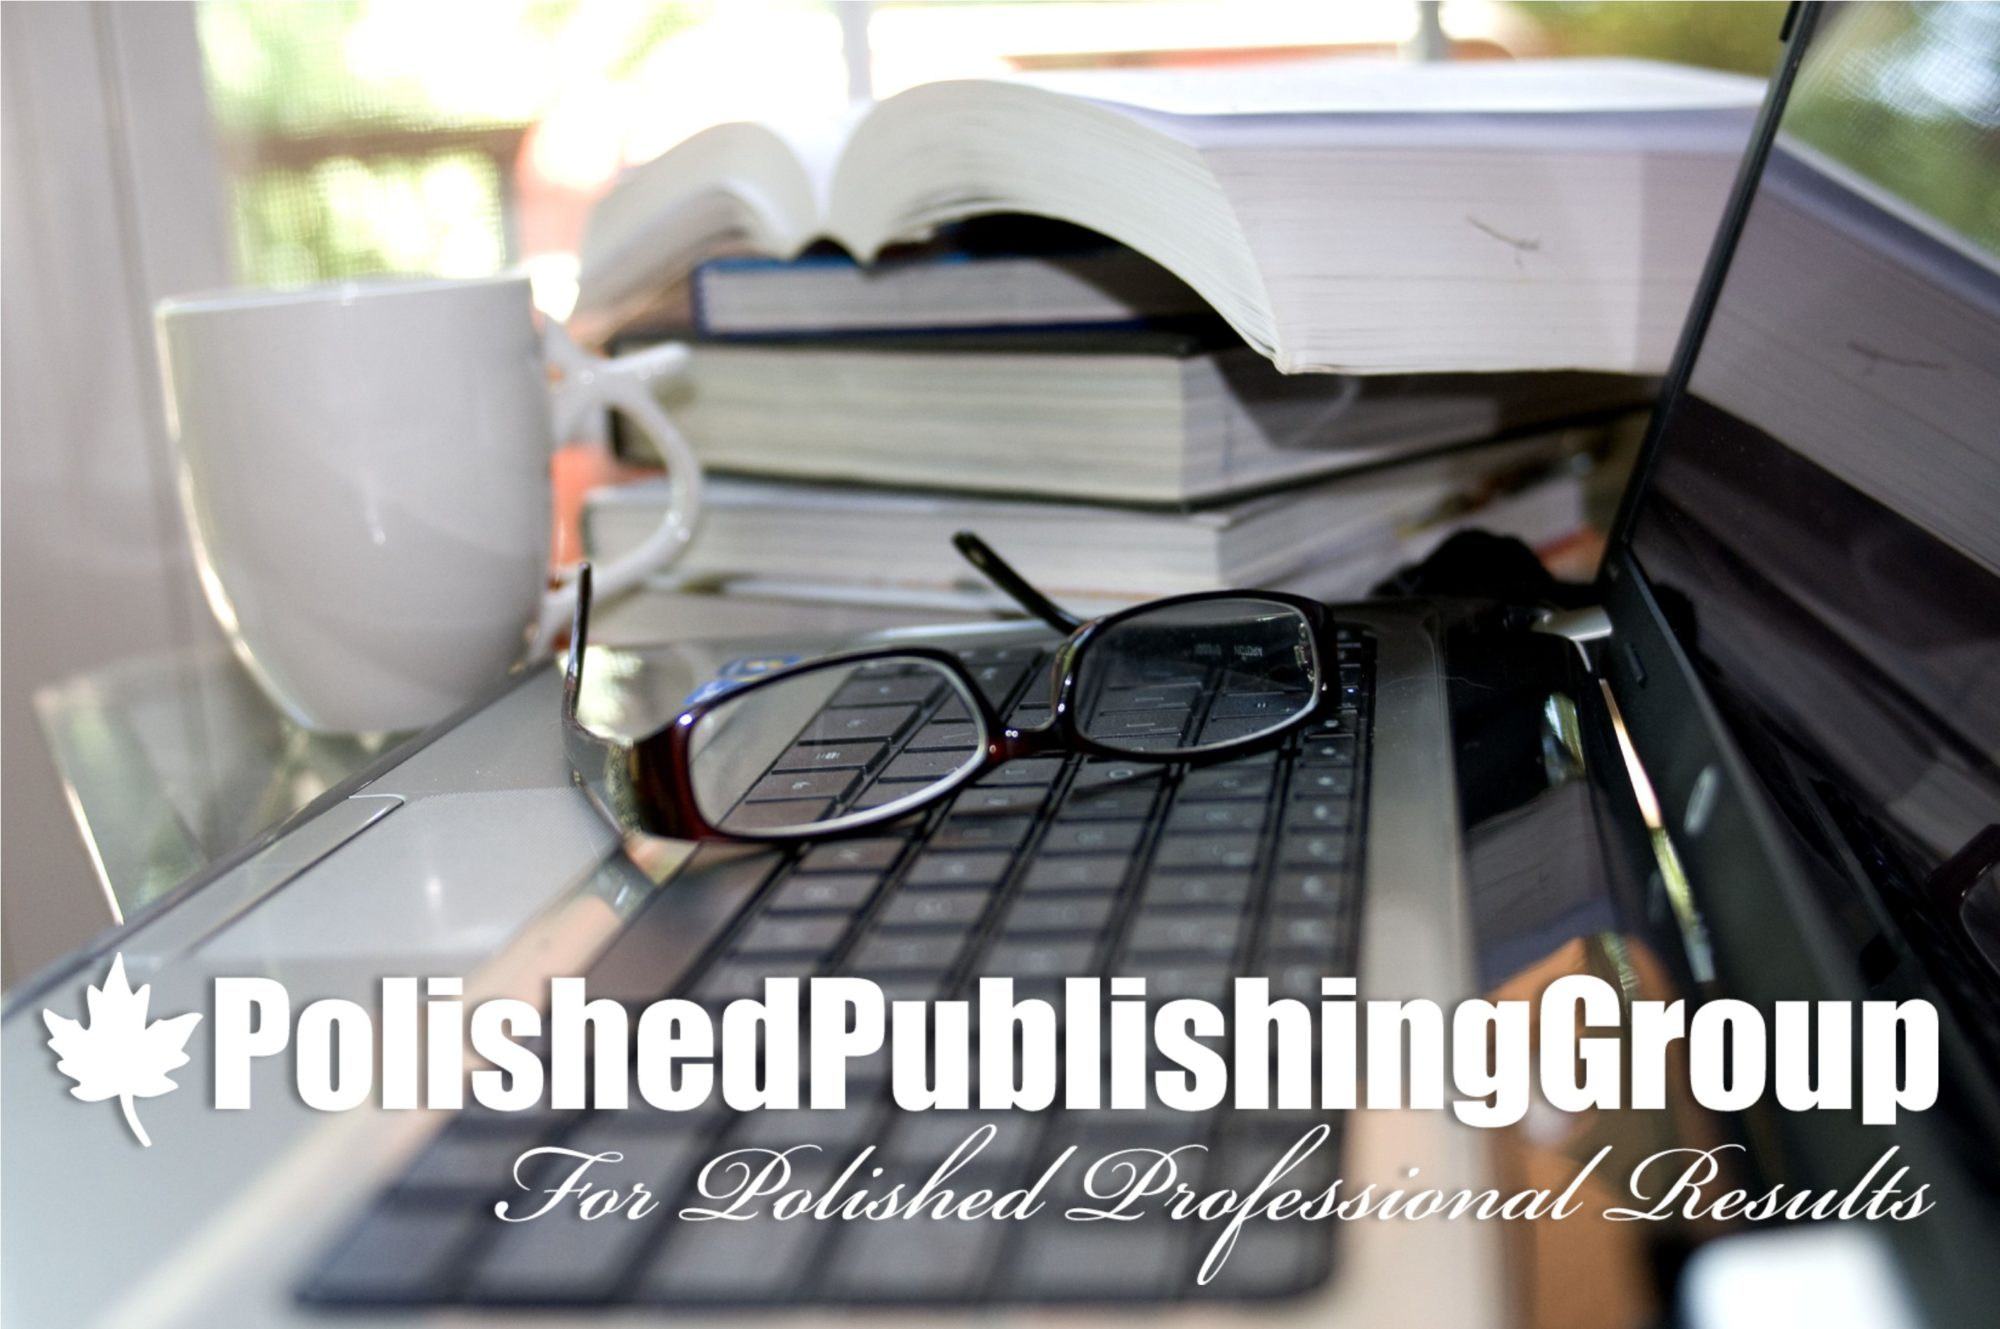 Polished Publishing Group (PPG)